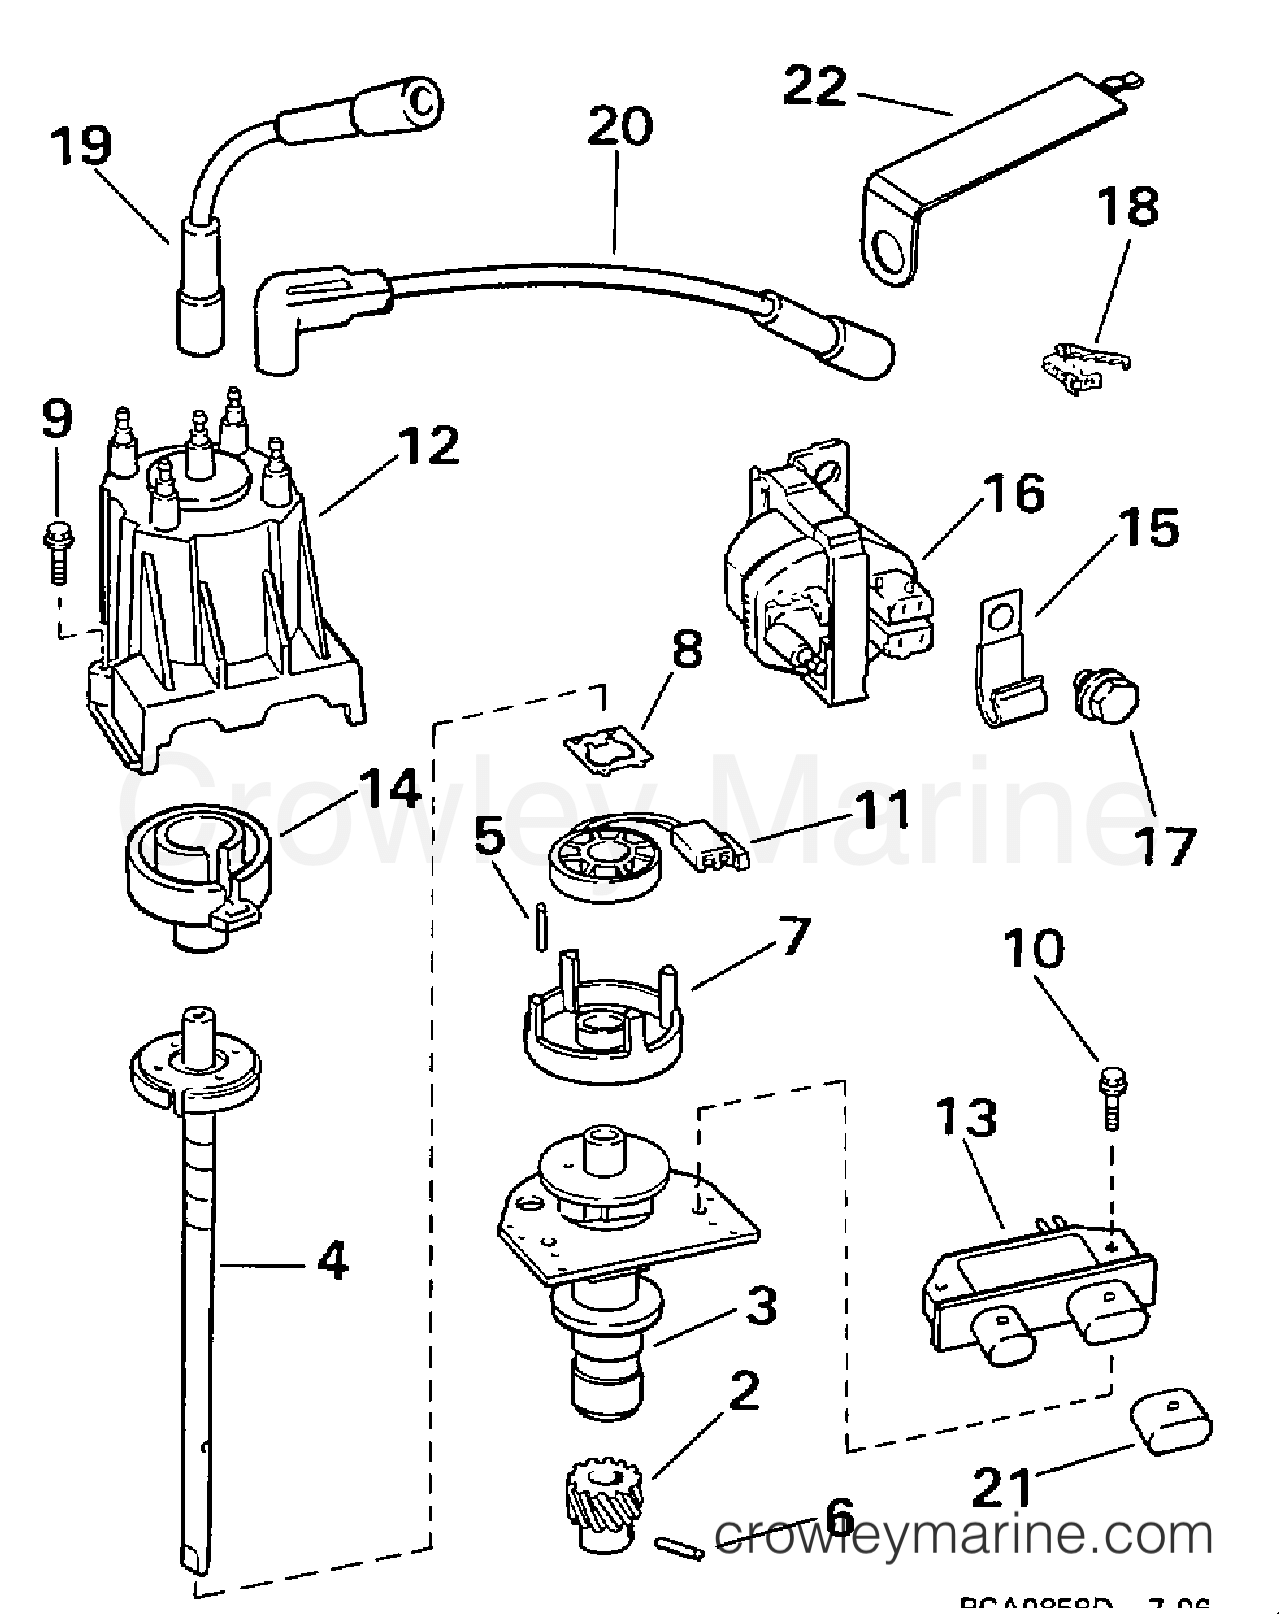 Distributor Amp Ignition Coil